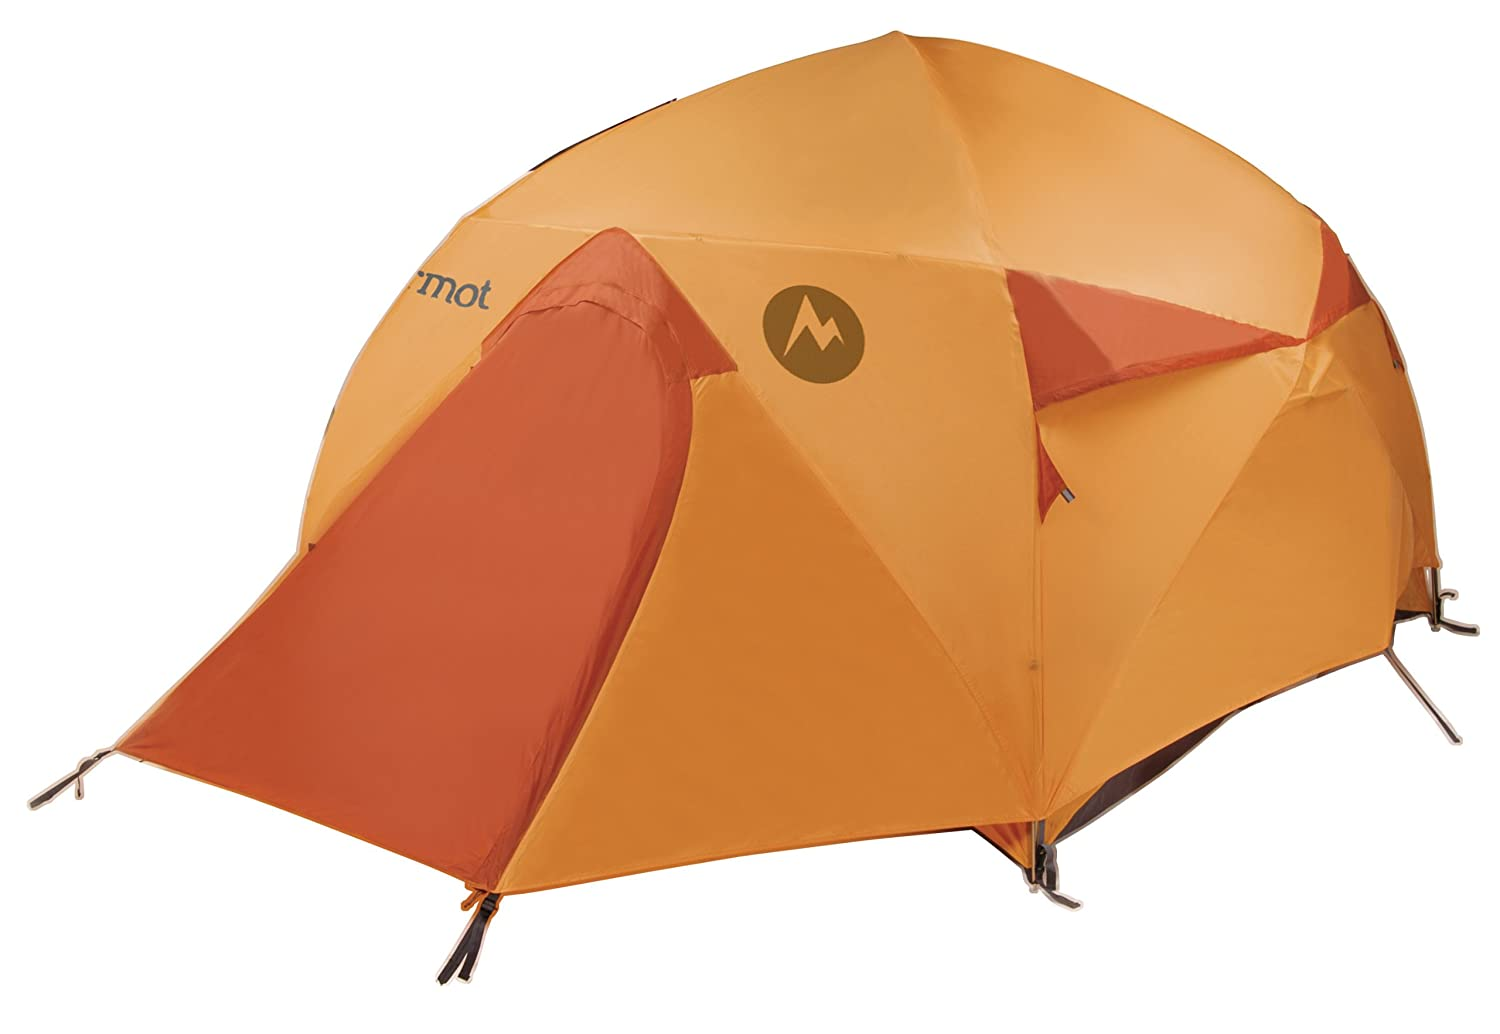 Amazon.com  Marmot Halo 4-Persons Tent Orange One  Sports u0026 Outdoors  sc 1 st  Amazon.com & Amazon.com : Marmot Halo 4-Persons Tent Orange One : Sports ...